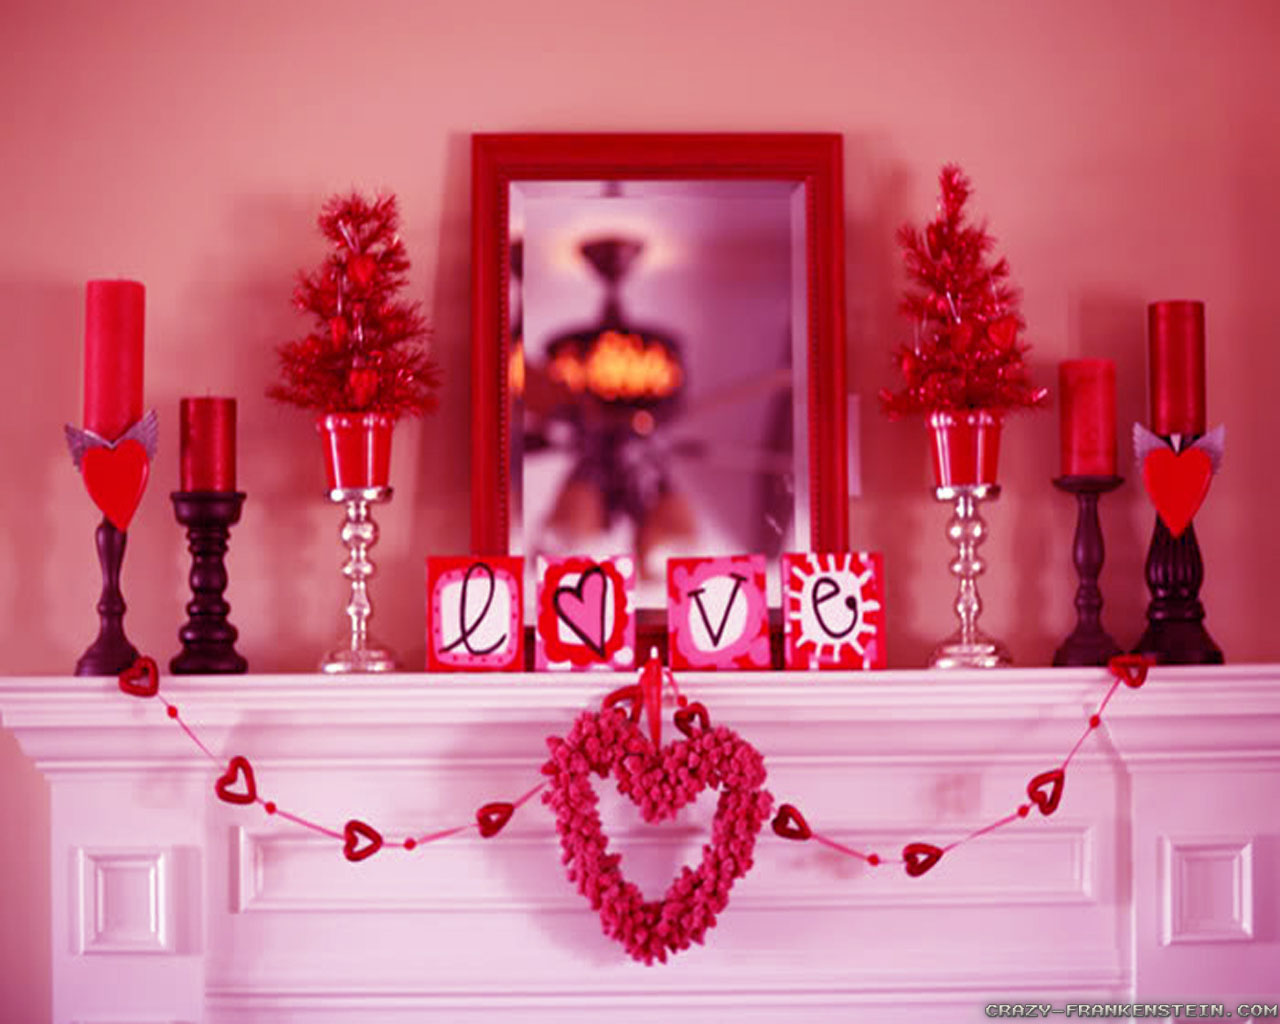 Eager hands valentine 39 s day decorating ideas for Decorate for valentines day